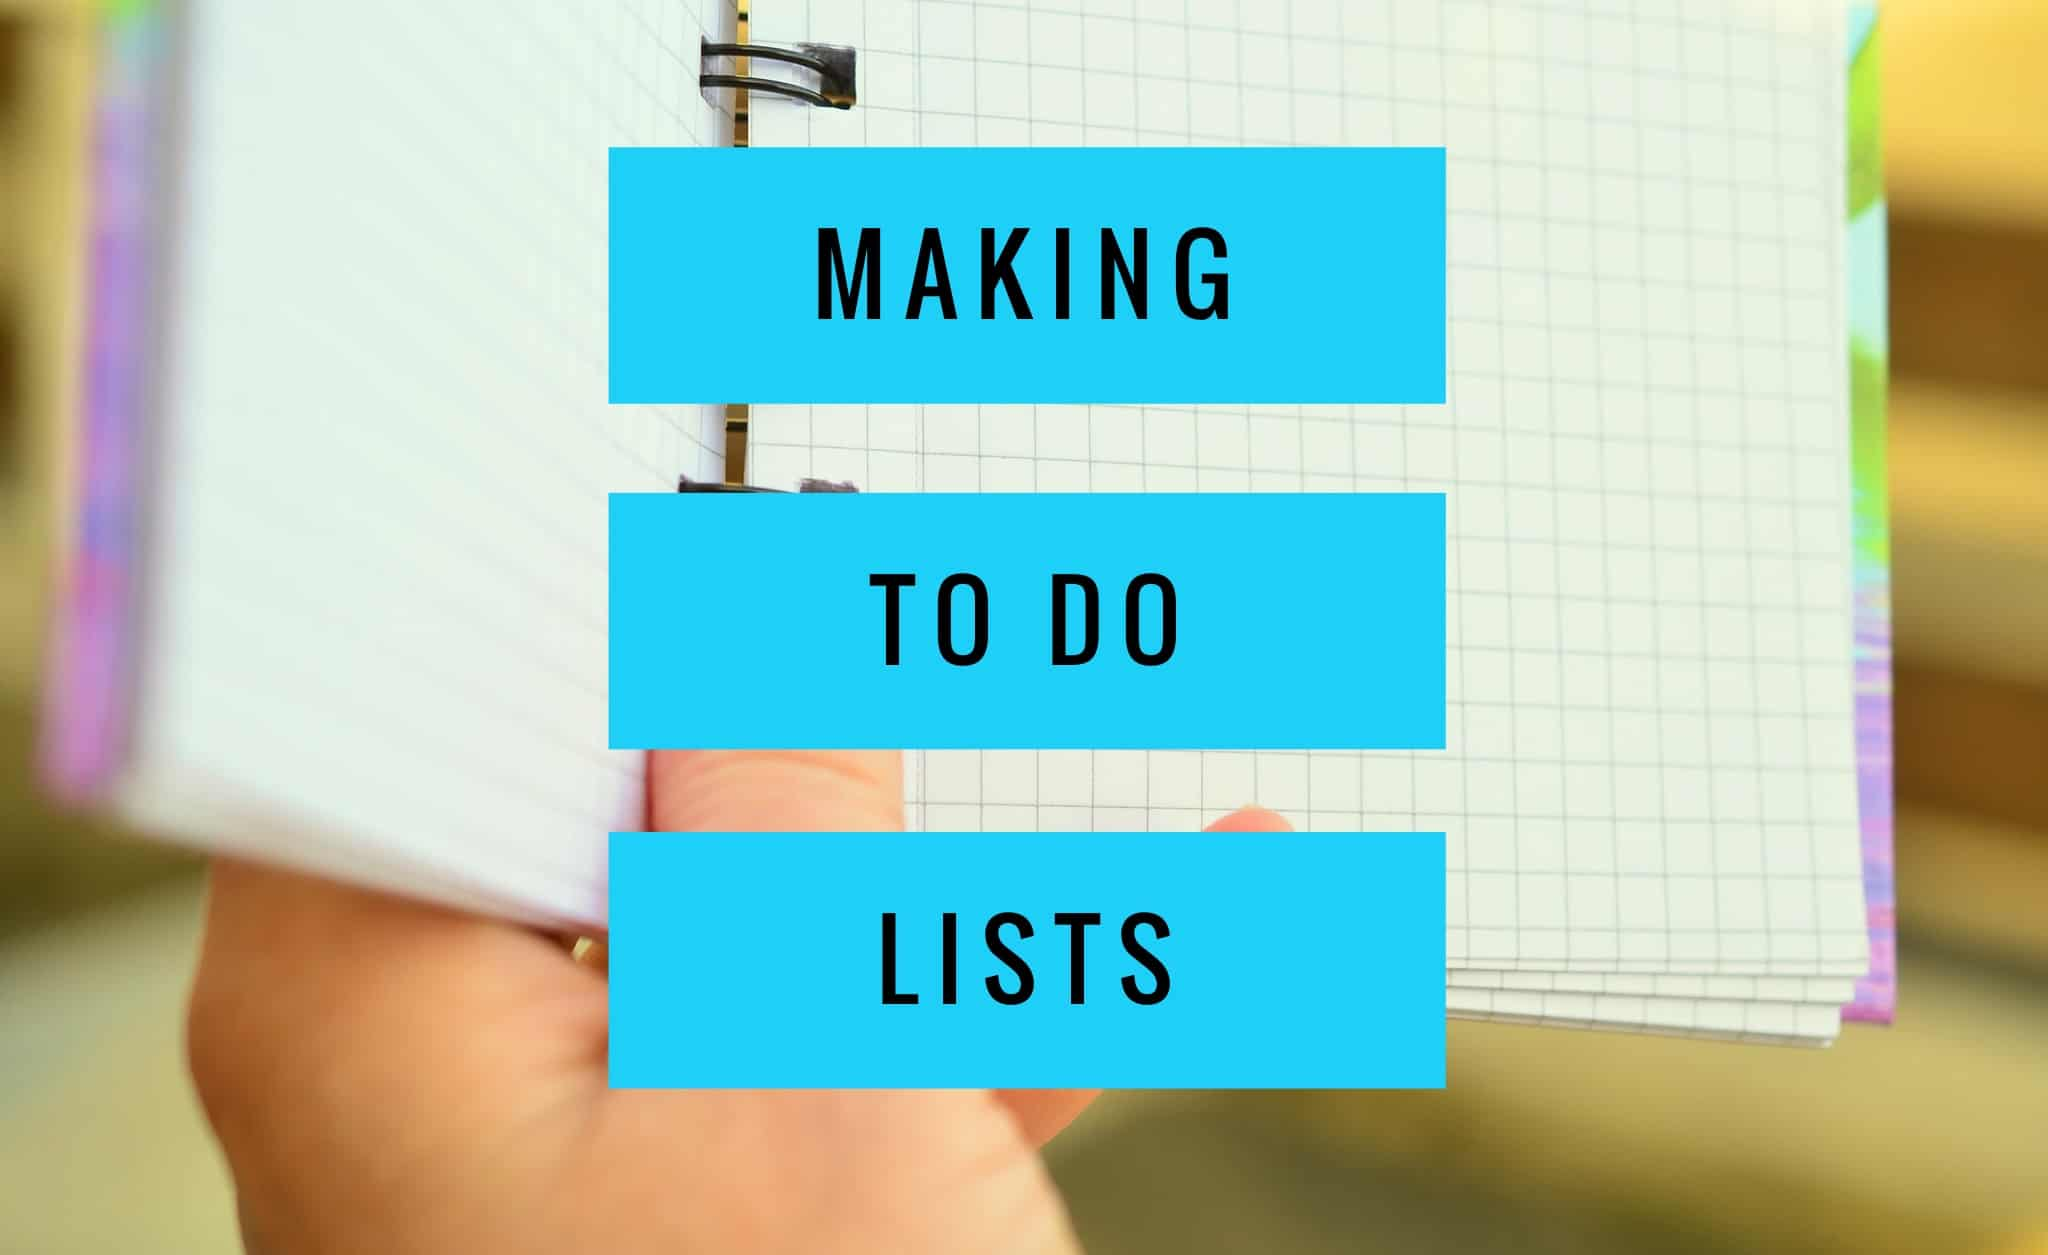 Making To Do Lists Title